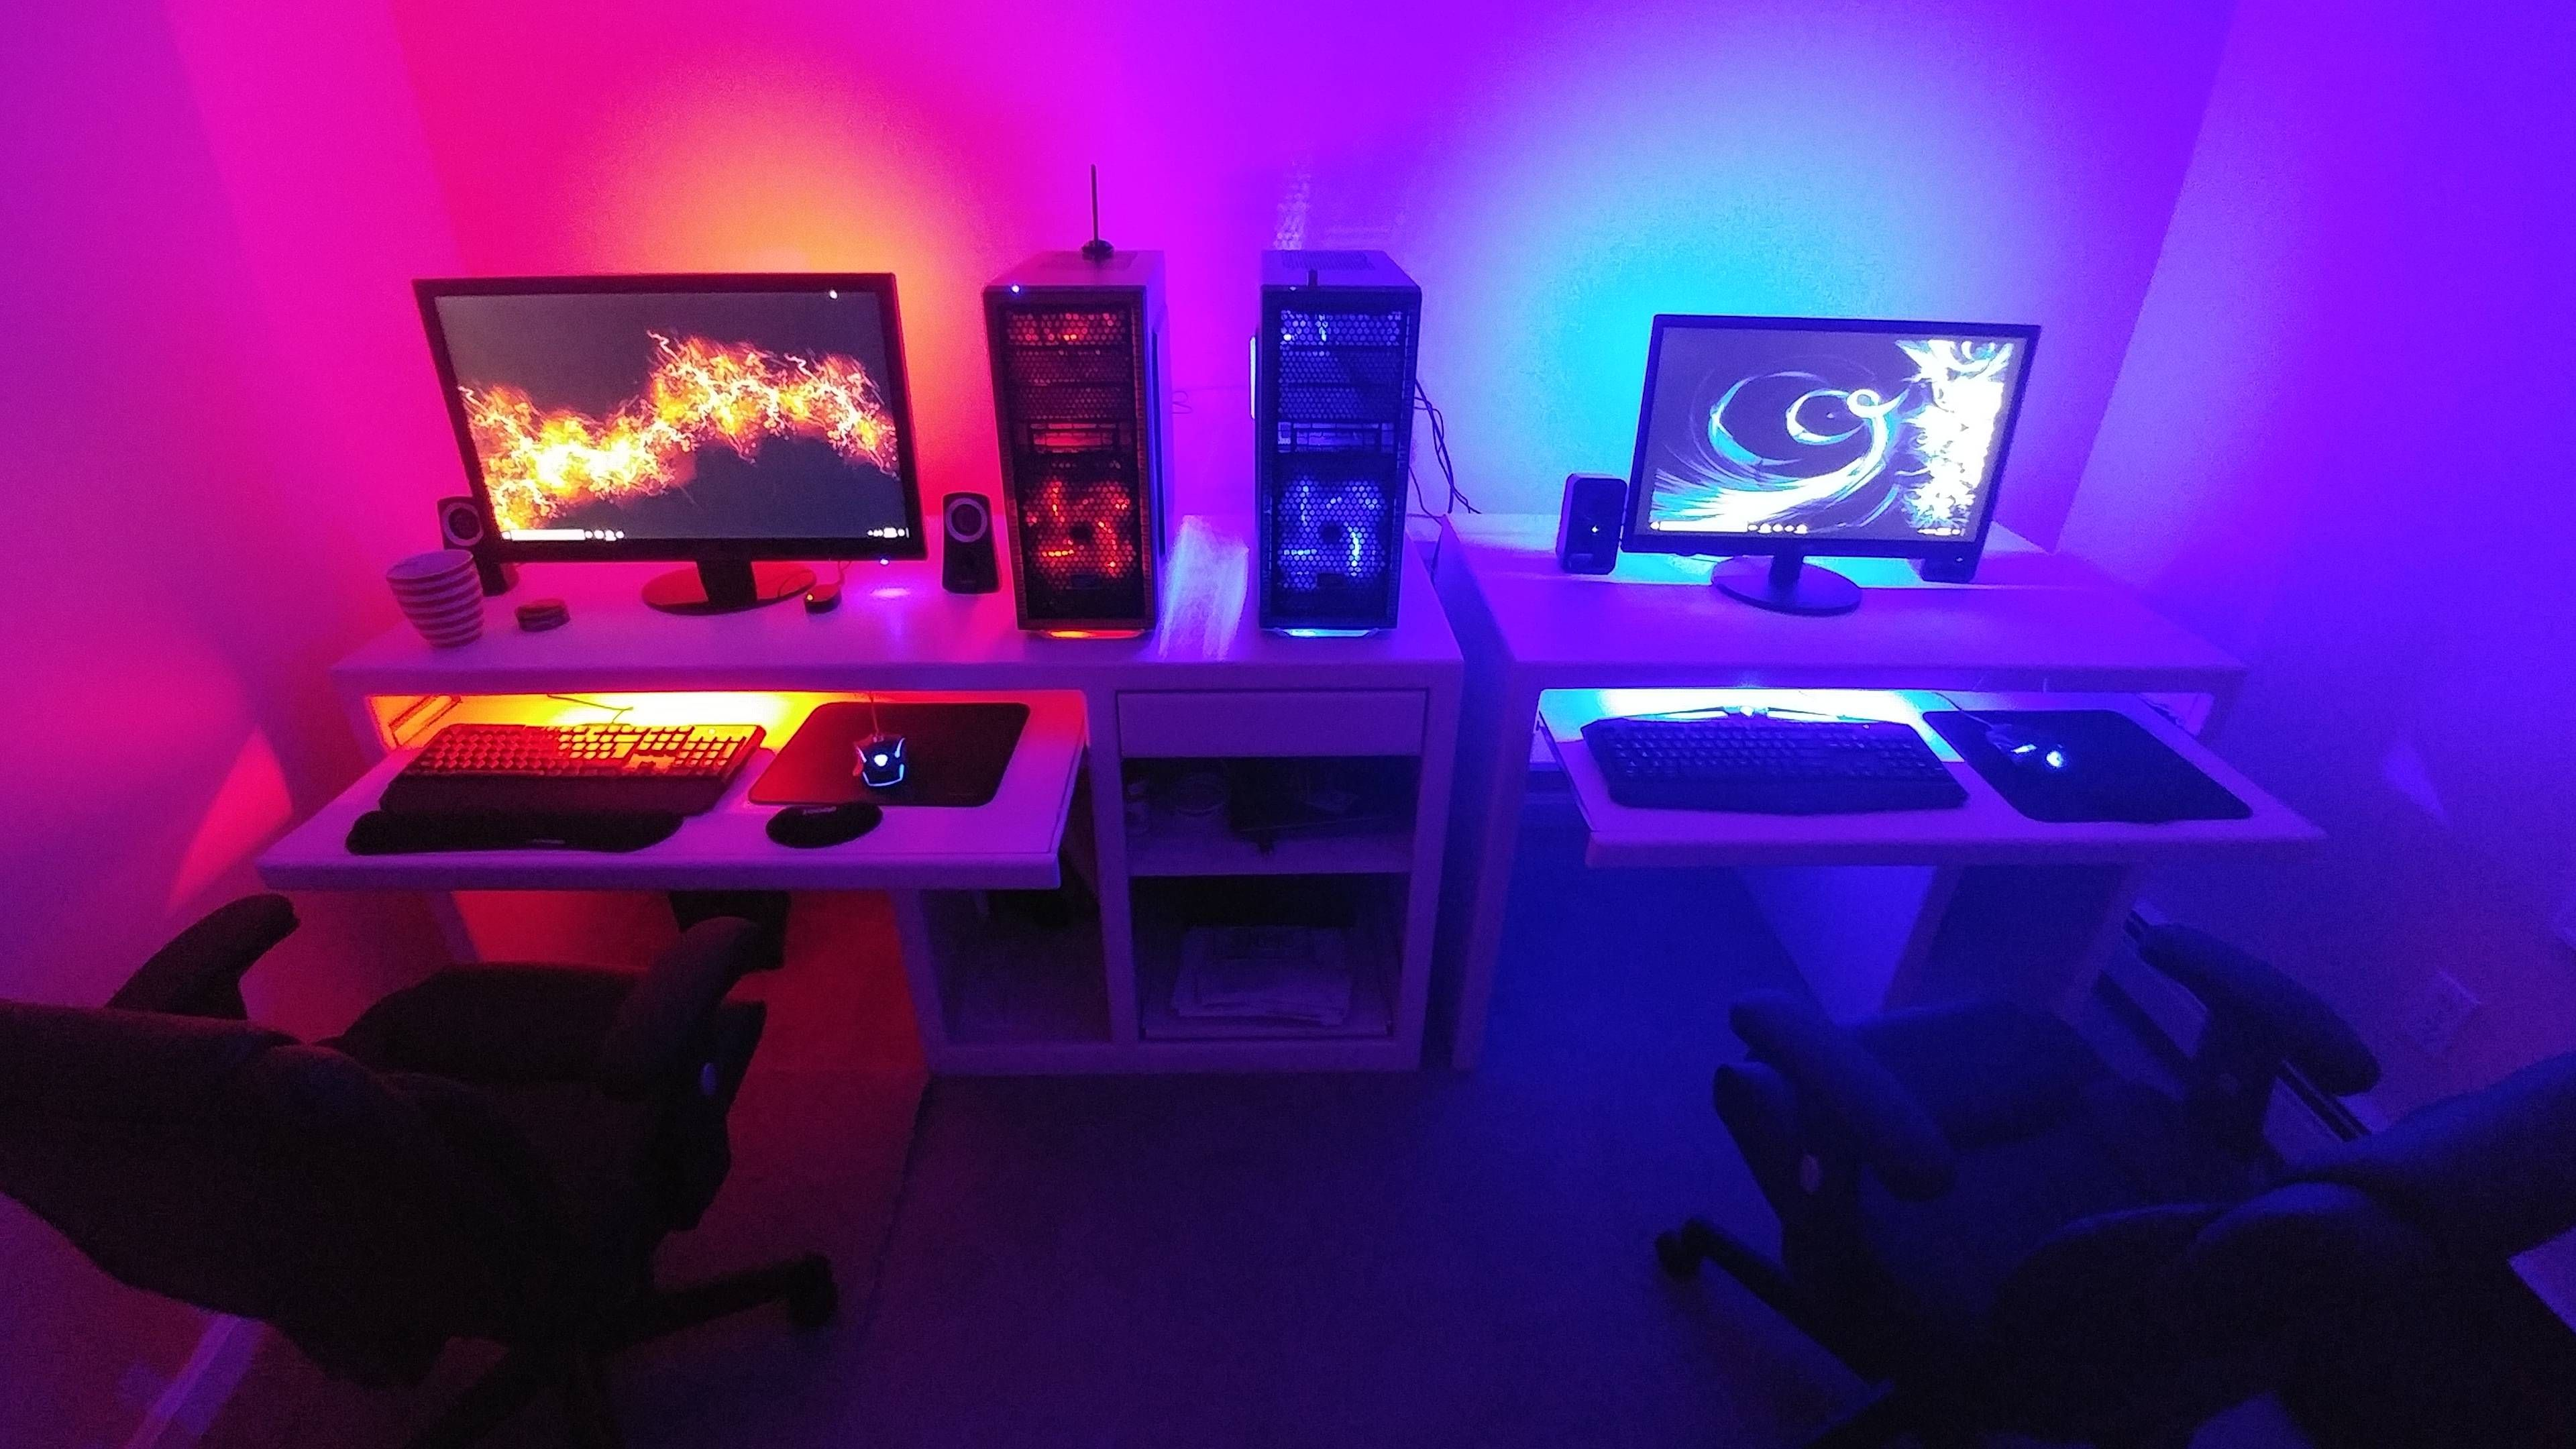 Step 1 Build Computer Step 2 Convince Fiancee She Also Needs Computer Step 3 Fiancee Realizes She Loves Pc Gaming Step 4 Battlestations Gaming Computer Desk Computer Gaming Room Gamer Room